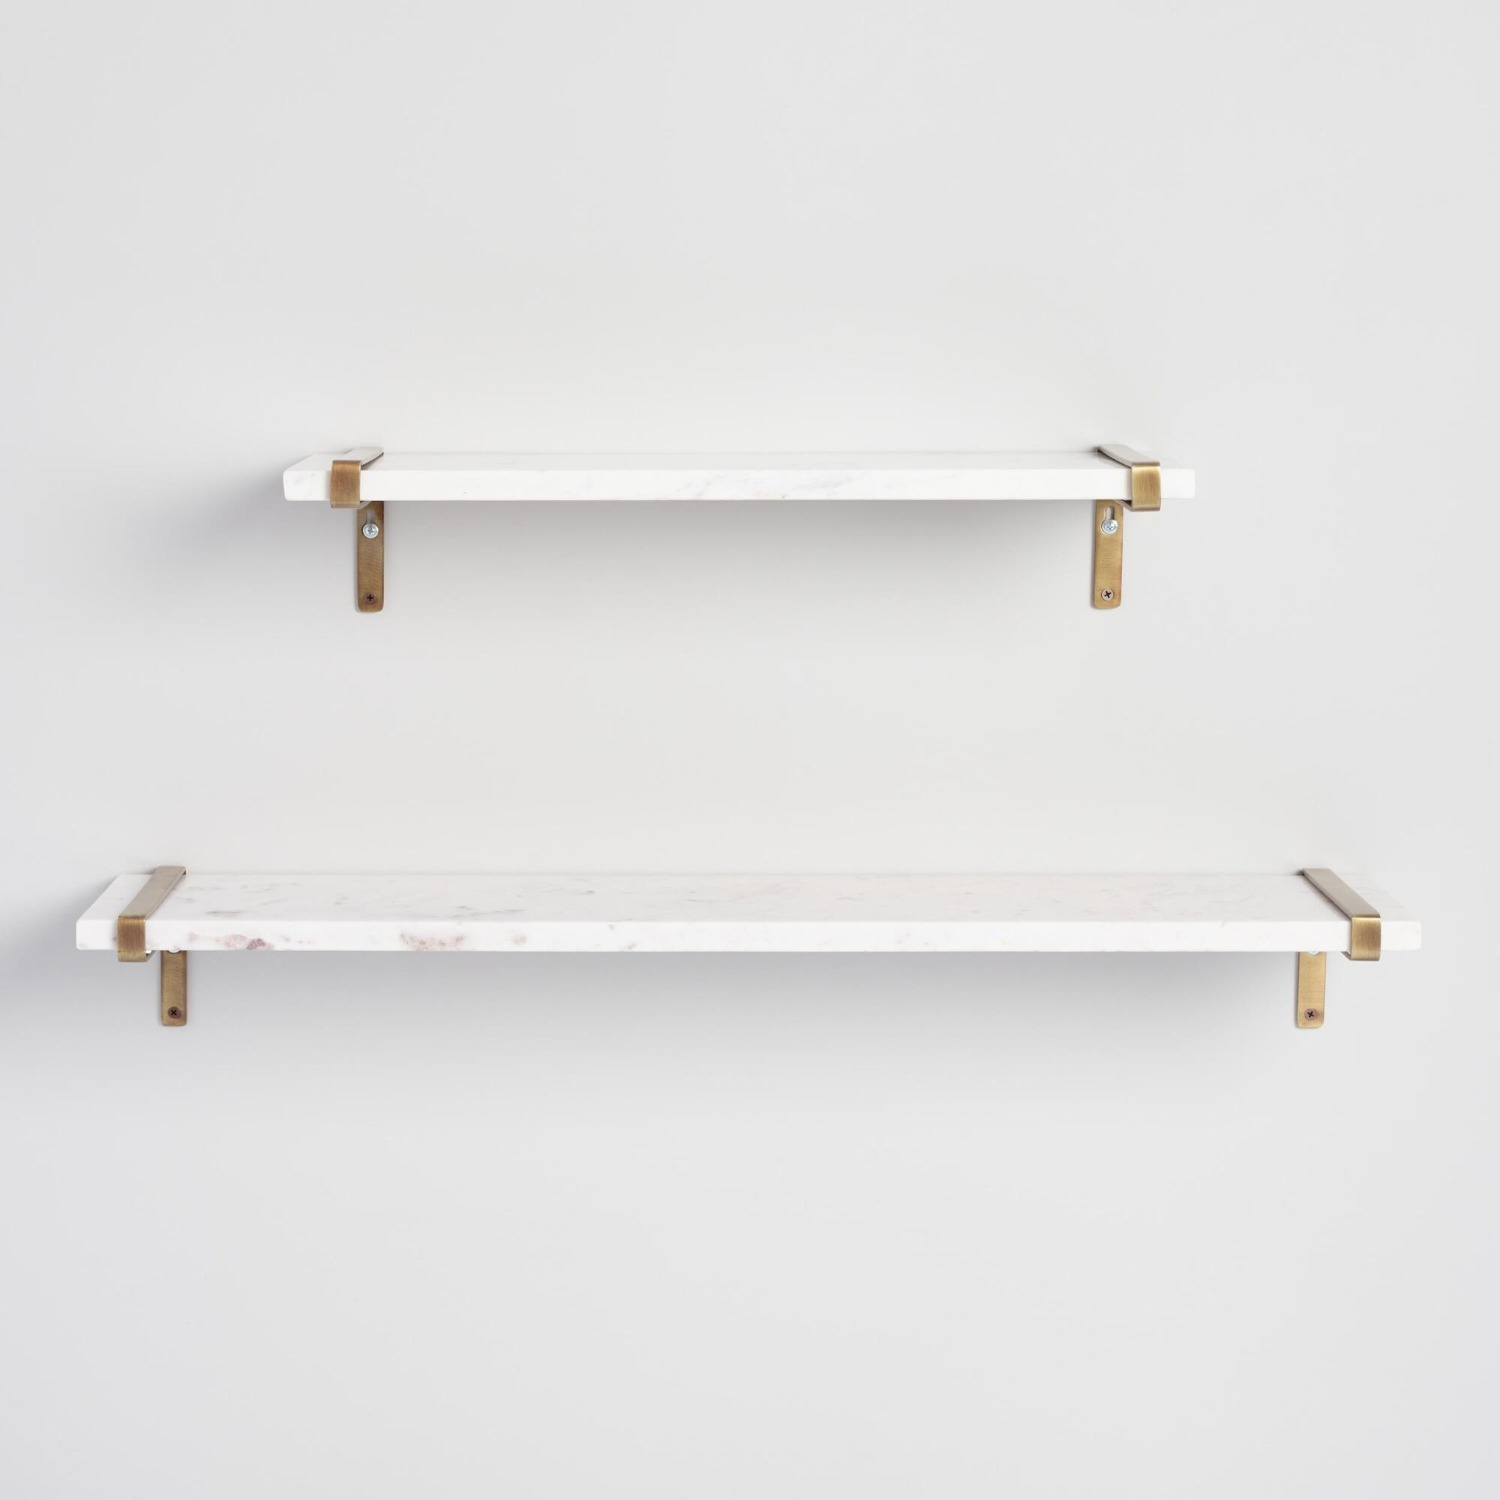 White Marble & Antique Brass Wall Shelves - image-1